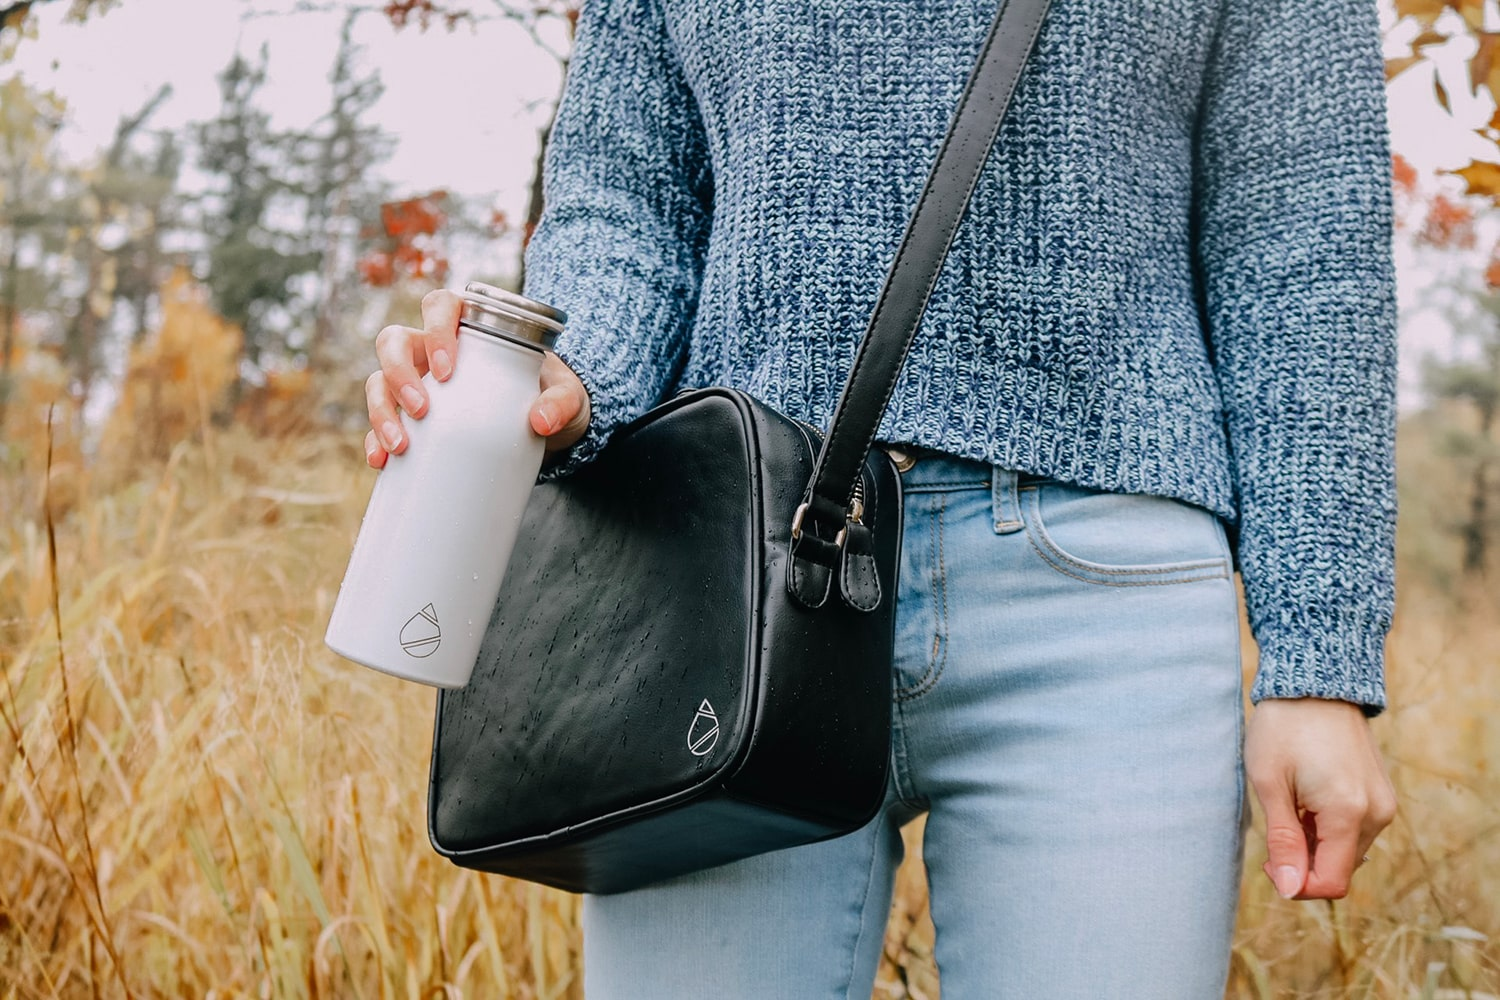 Hydriah Leather Bag and Water Bottle